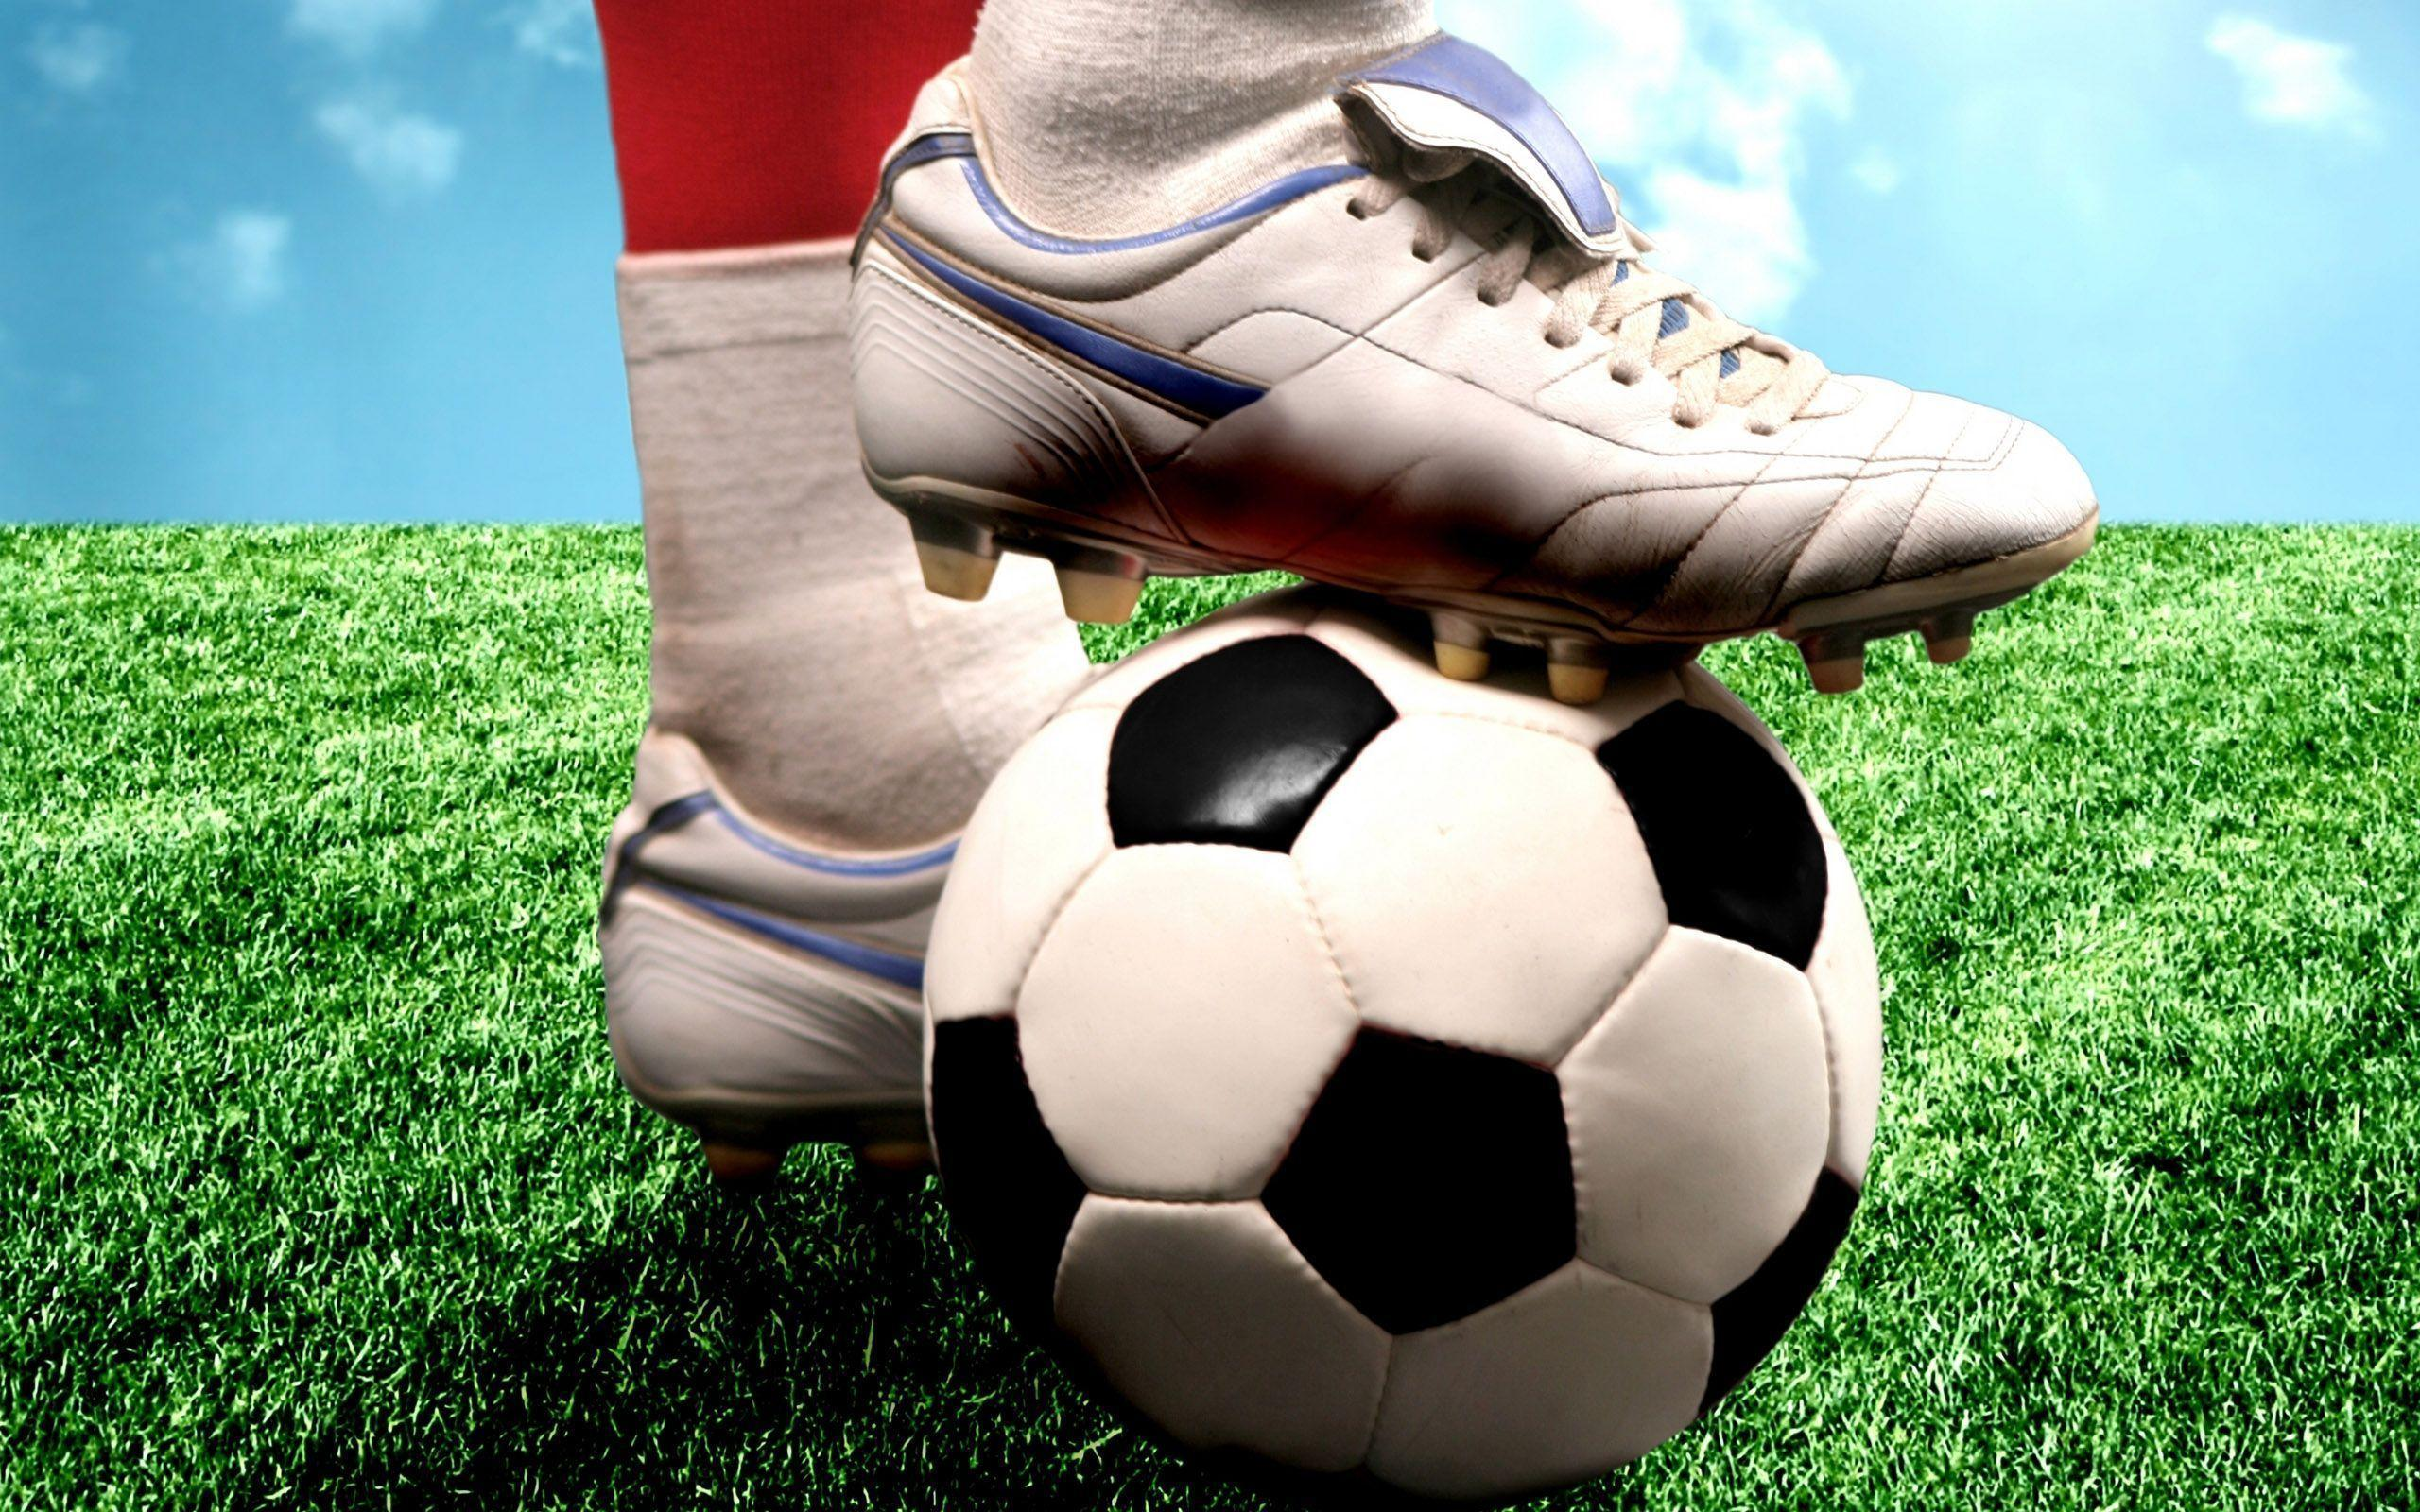 Soccer Wallpapers Hd Backgrounds Wallpapers 79 HD Wallpapers